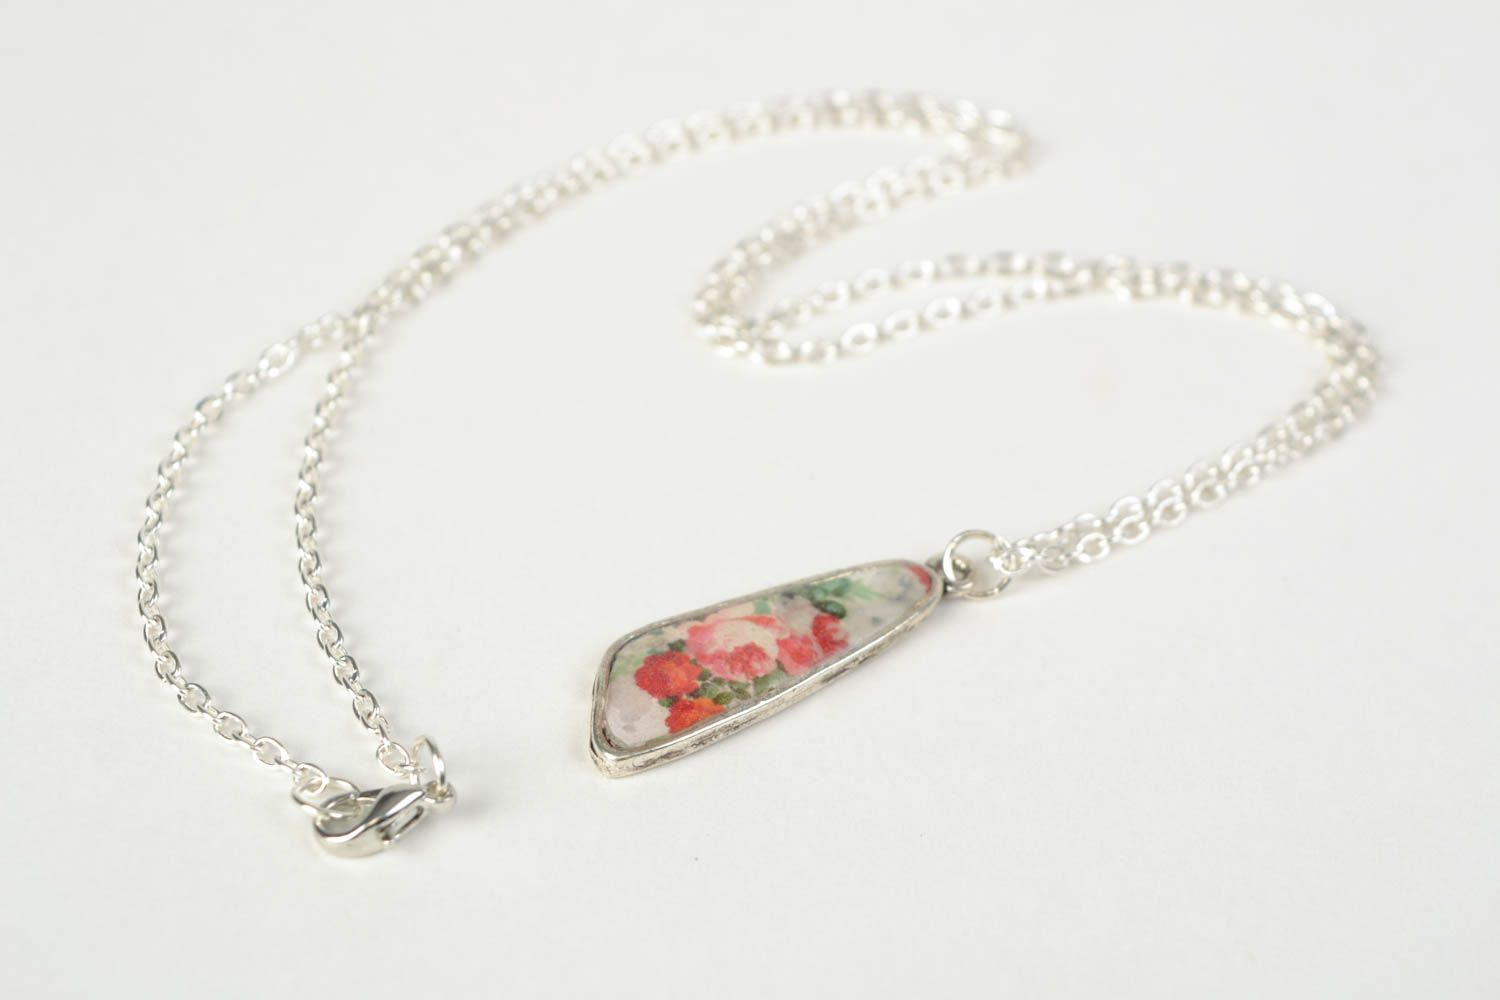 Handmade epoxy resin neck pendant with decoupage flowers for women photo 5